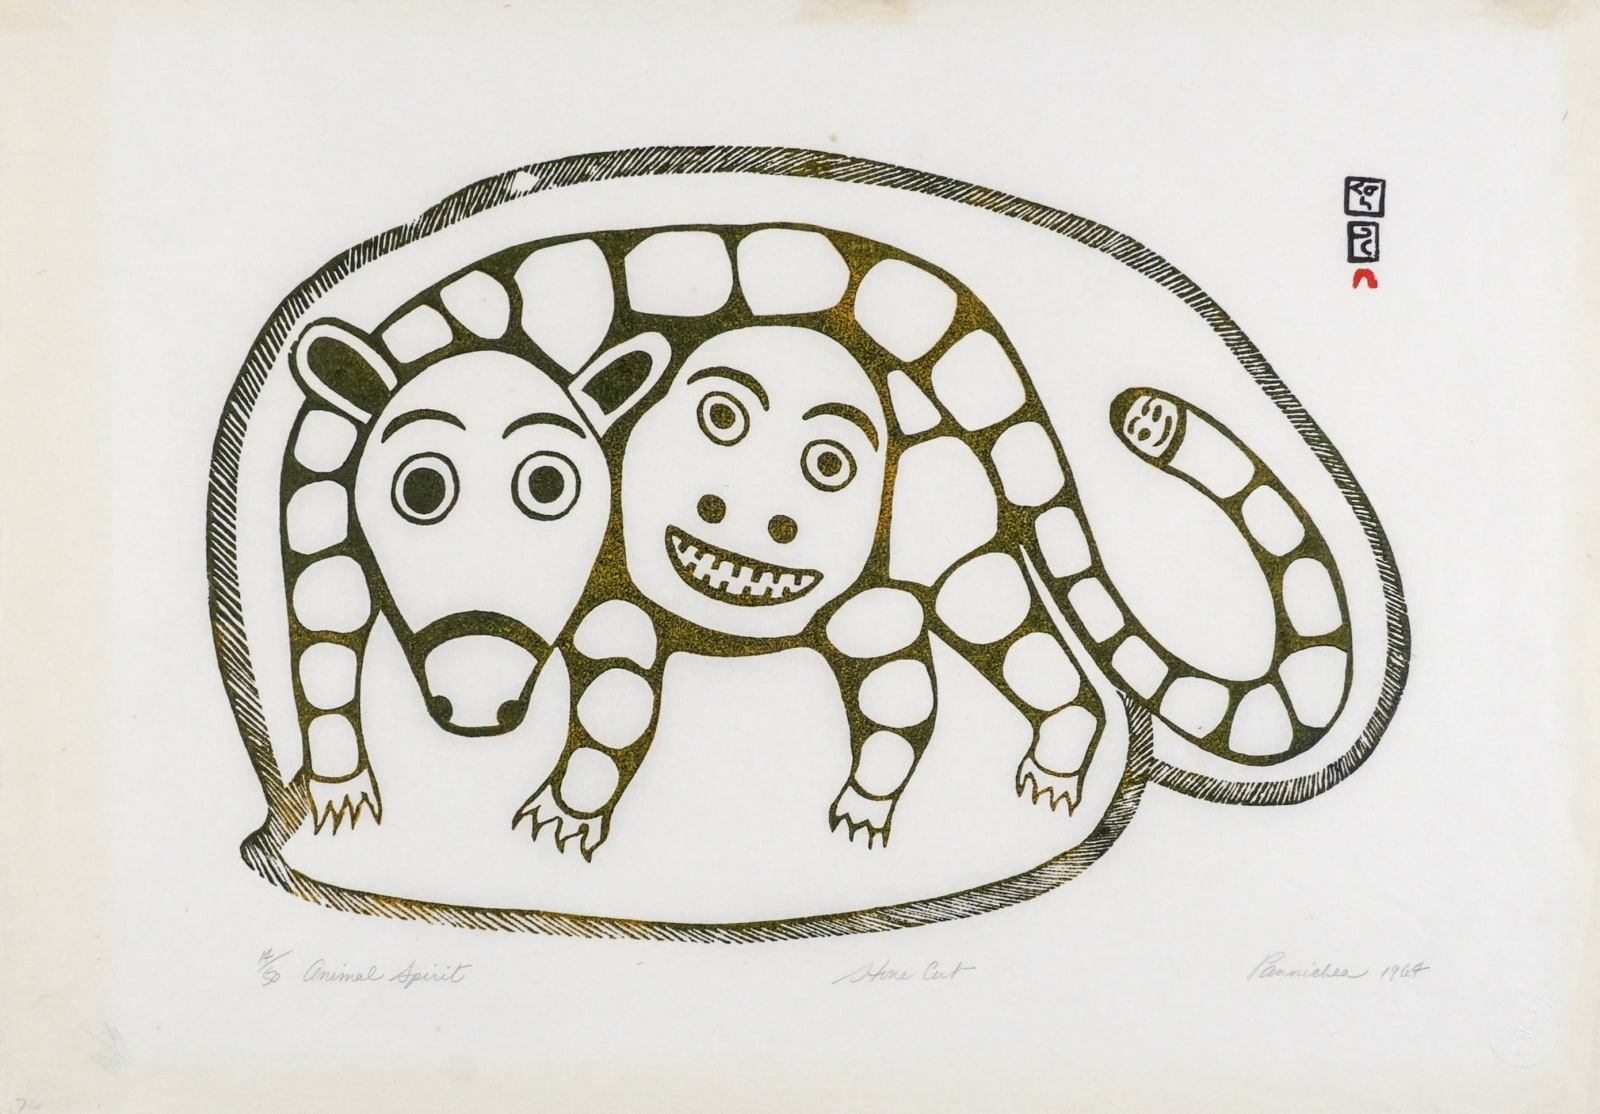 PAUNICHEA (PANNICHIAK MUNAMEE) (1920-1968) KINNGAIT CAPE DORSET Animal Spirit, 1964 stonecut, 15 x 24 in (38.1 x 61 cm) ESTIMATE: $300 — $500 New Price: $200